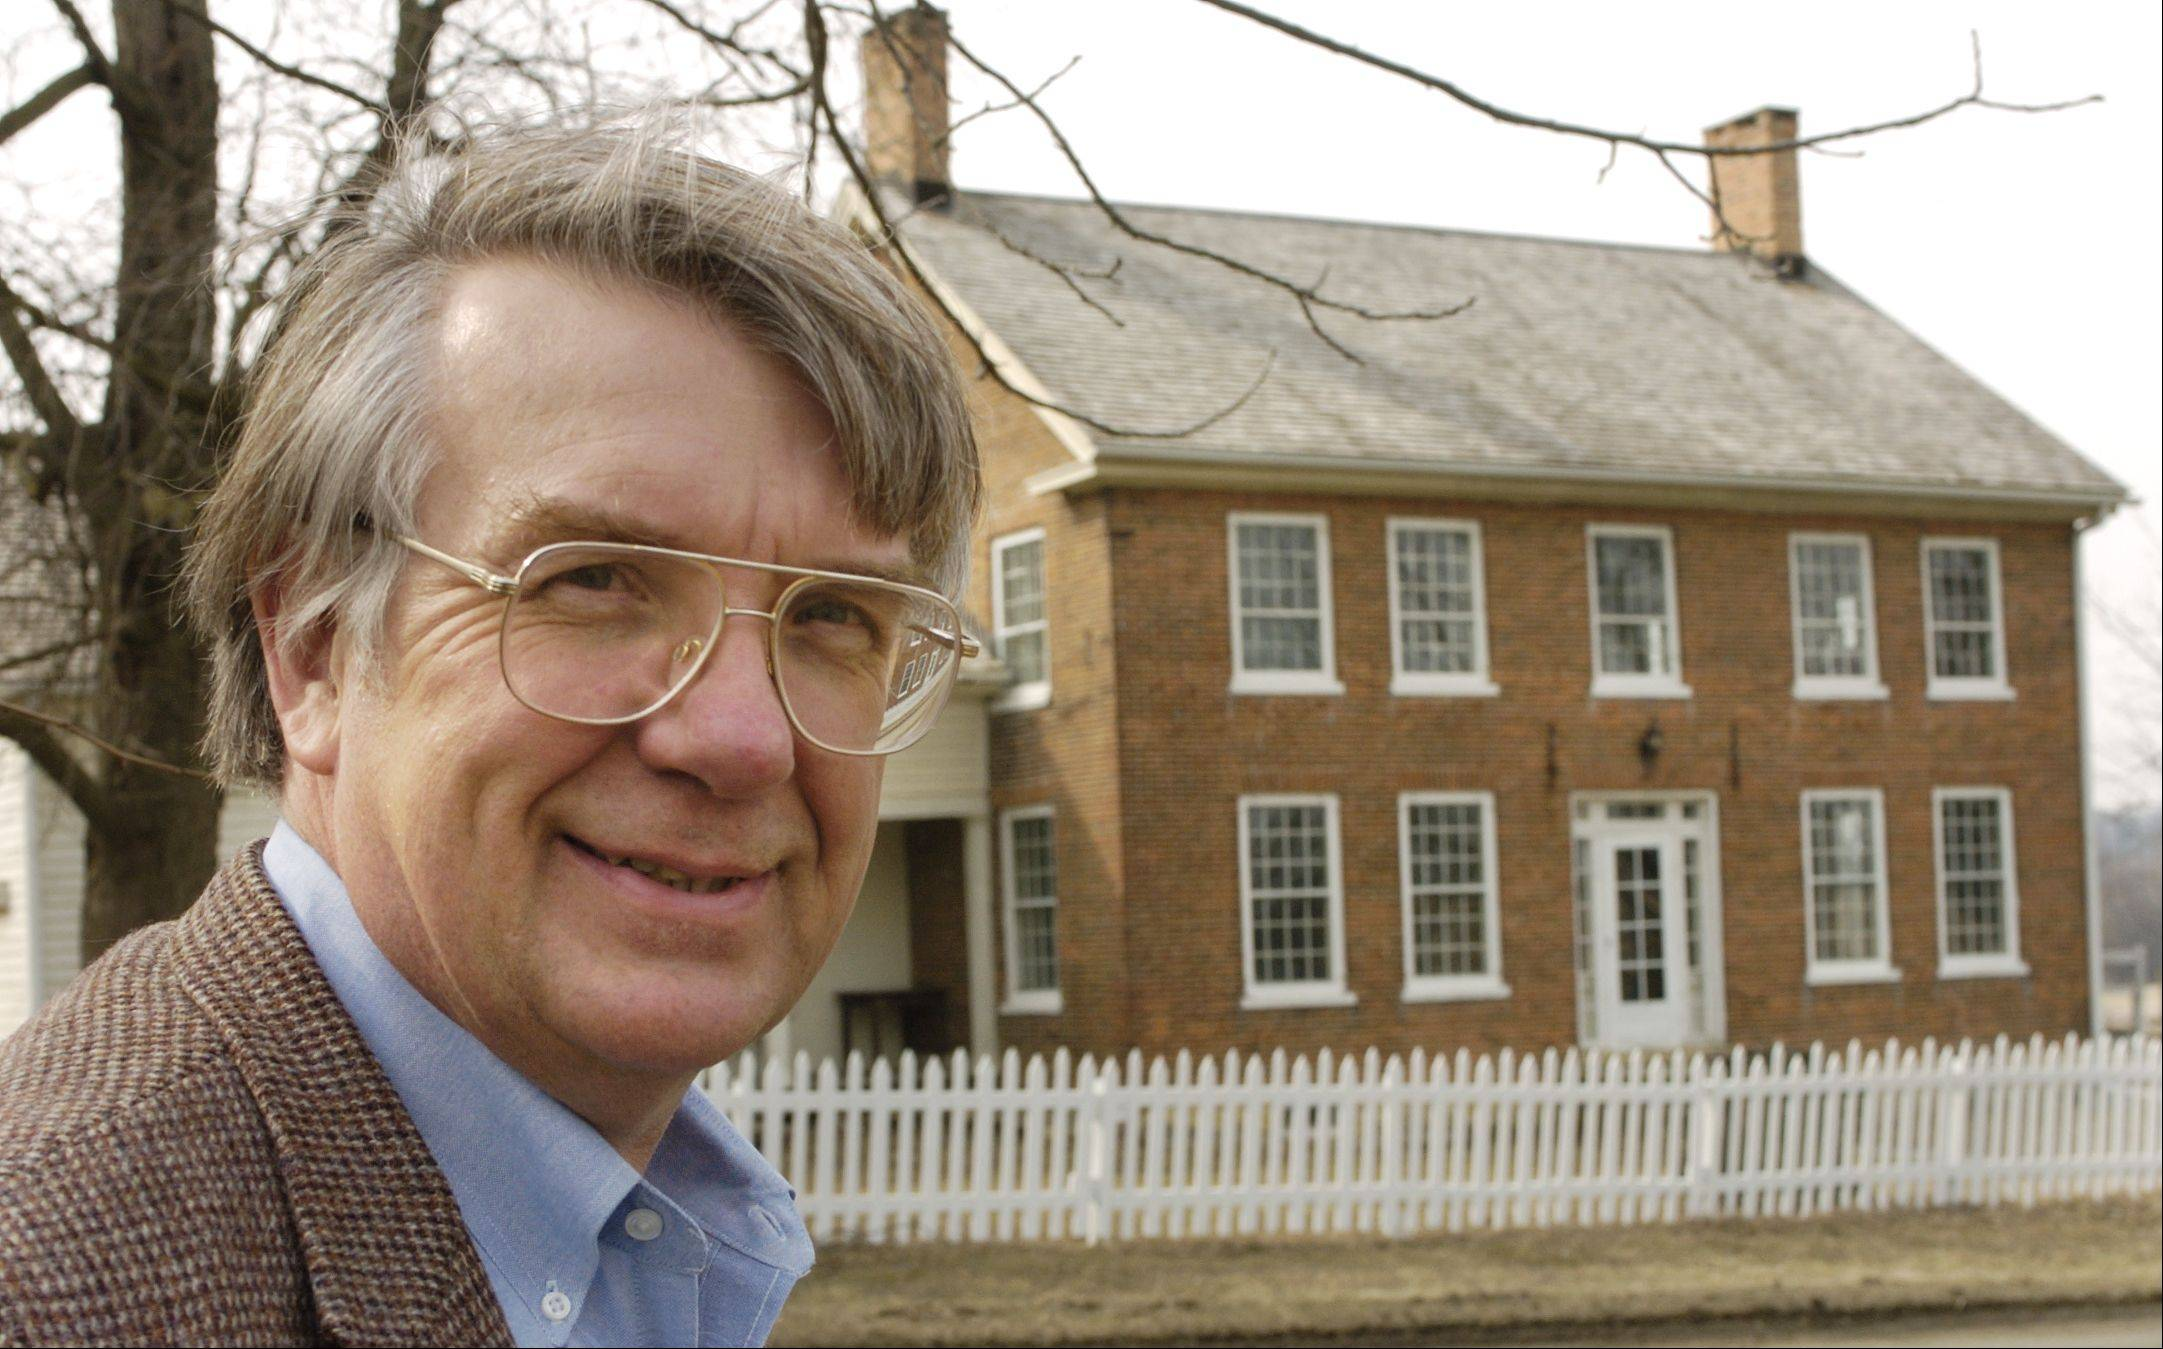 Jerome Johnson, executive director of Garfield Farm Museum, will share his knowledge at the museum's Prairie, Woodlands and Wetlands Managmenet Seminar, set for Saturday, Feb. 22.